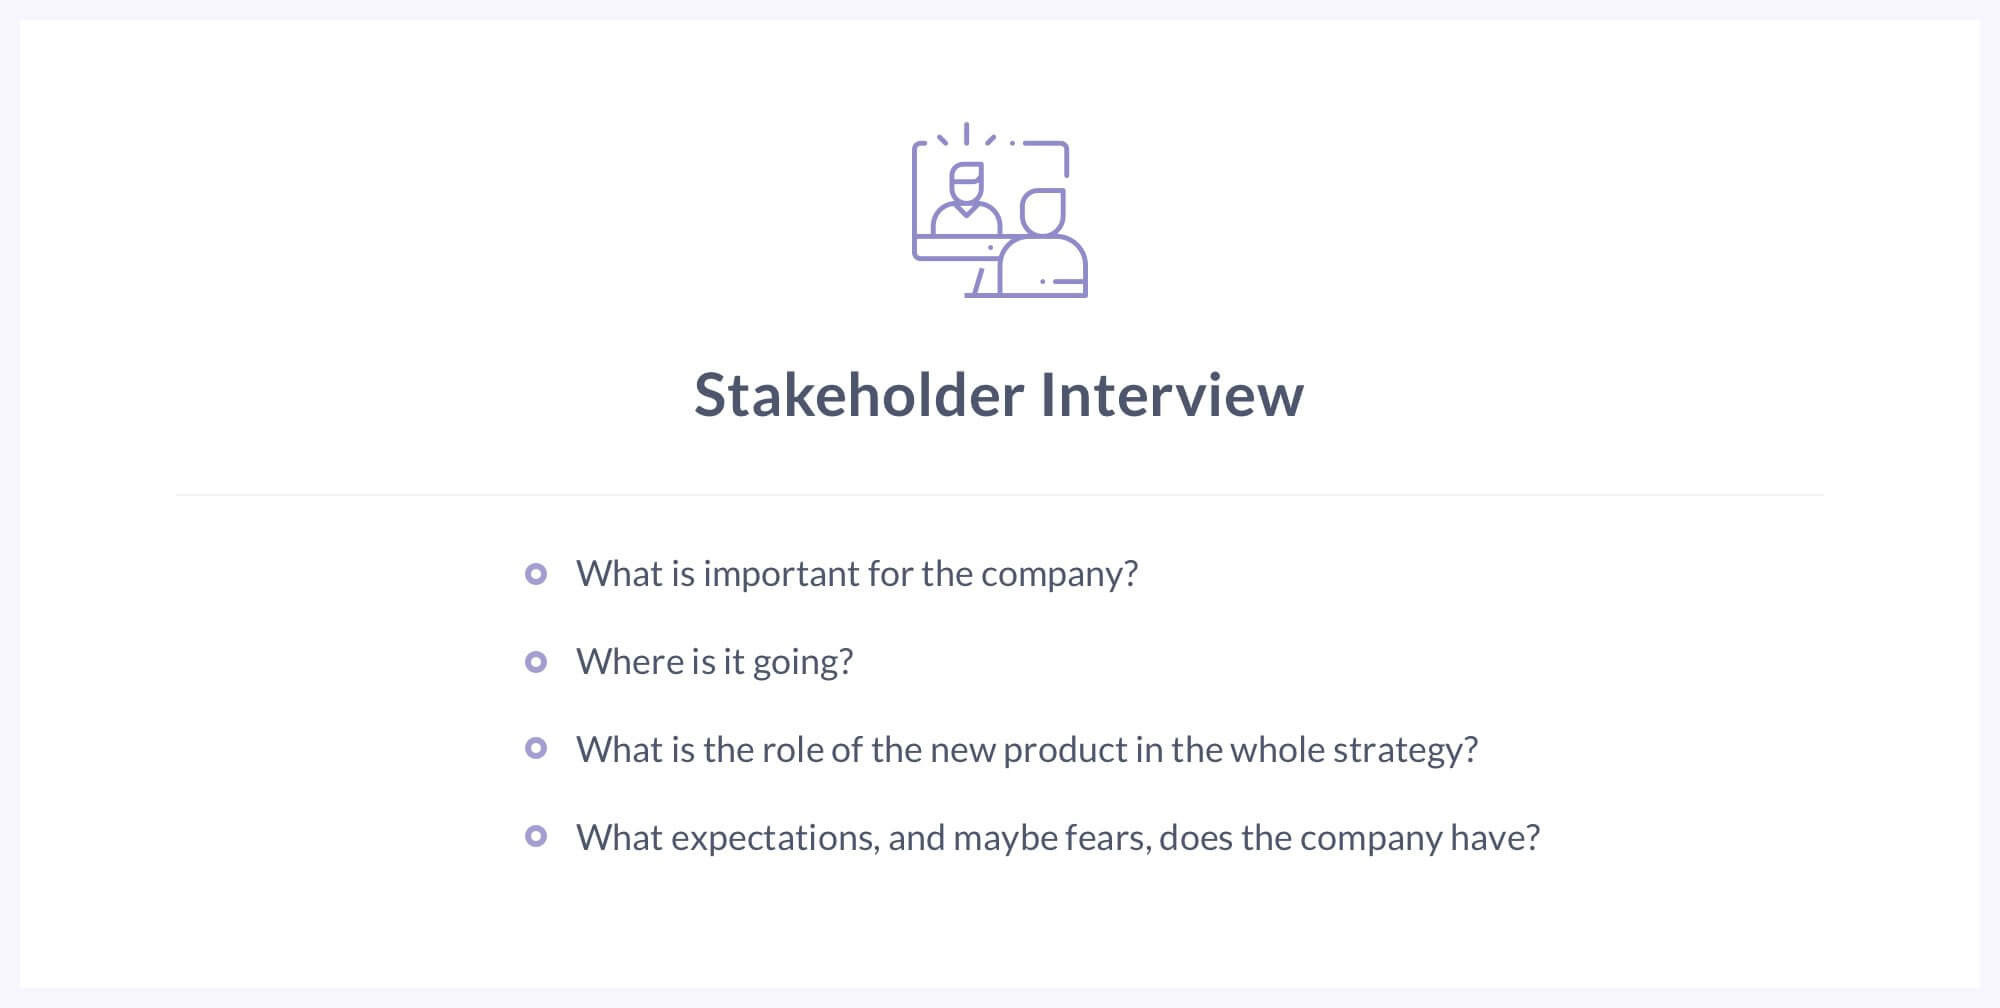 ux-design-core-banking-itti-uxda-stakeholders-interview